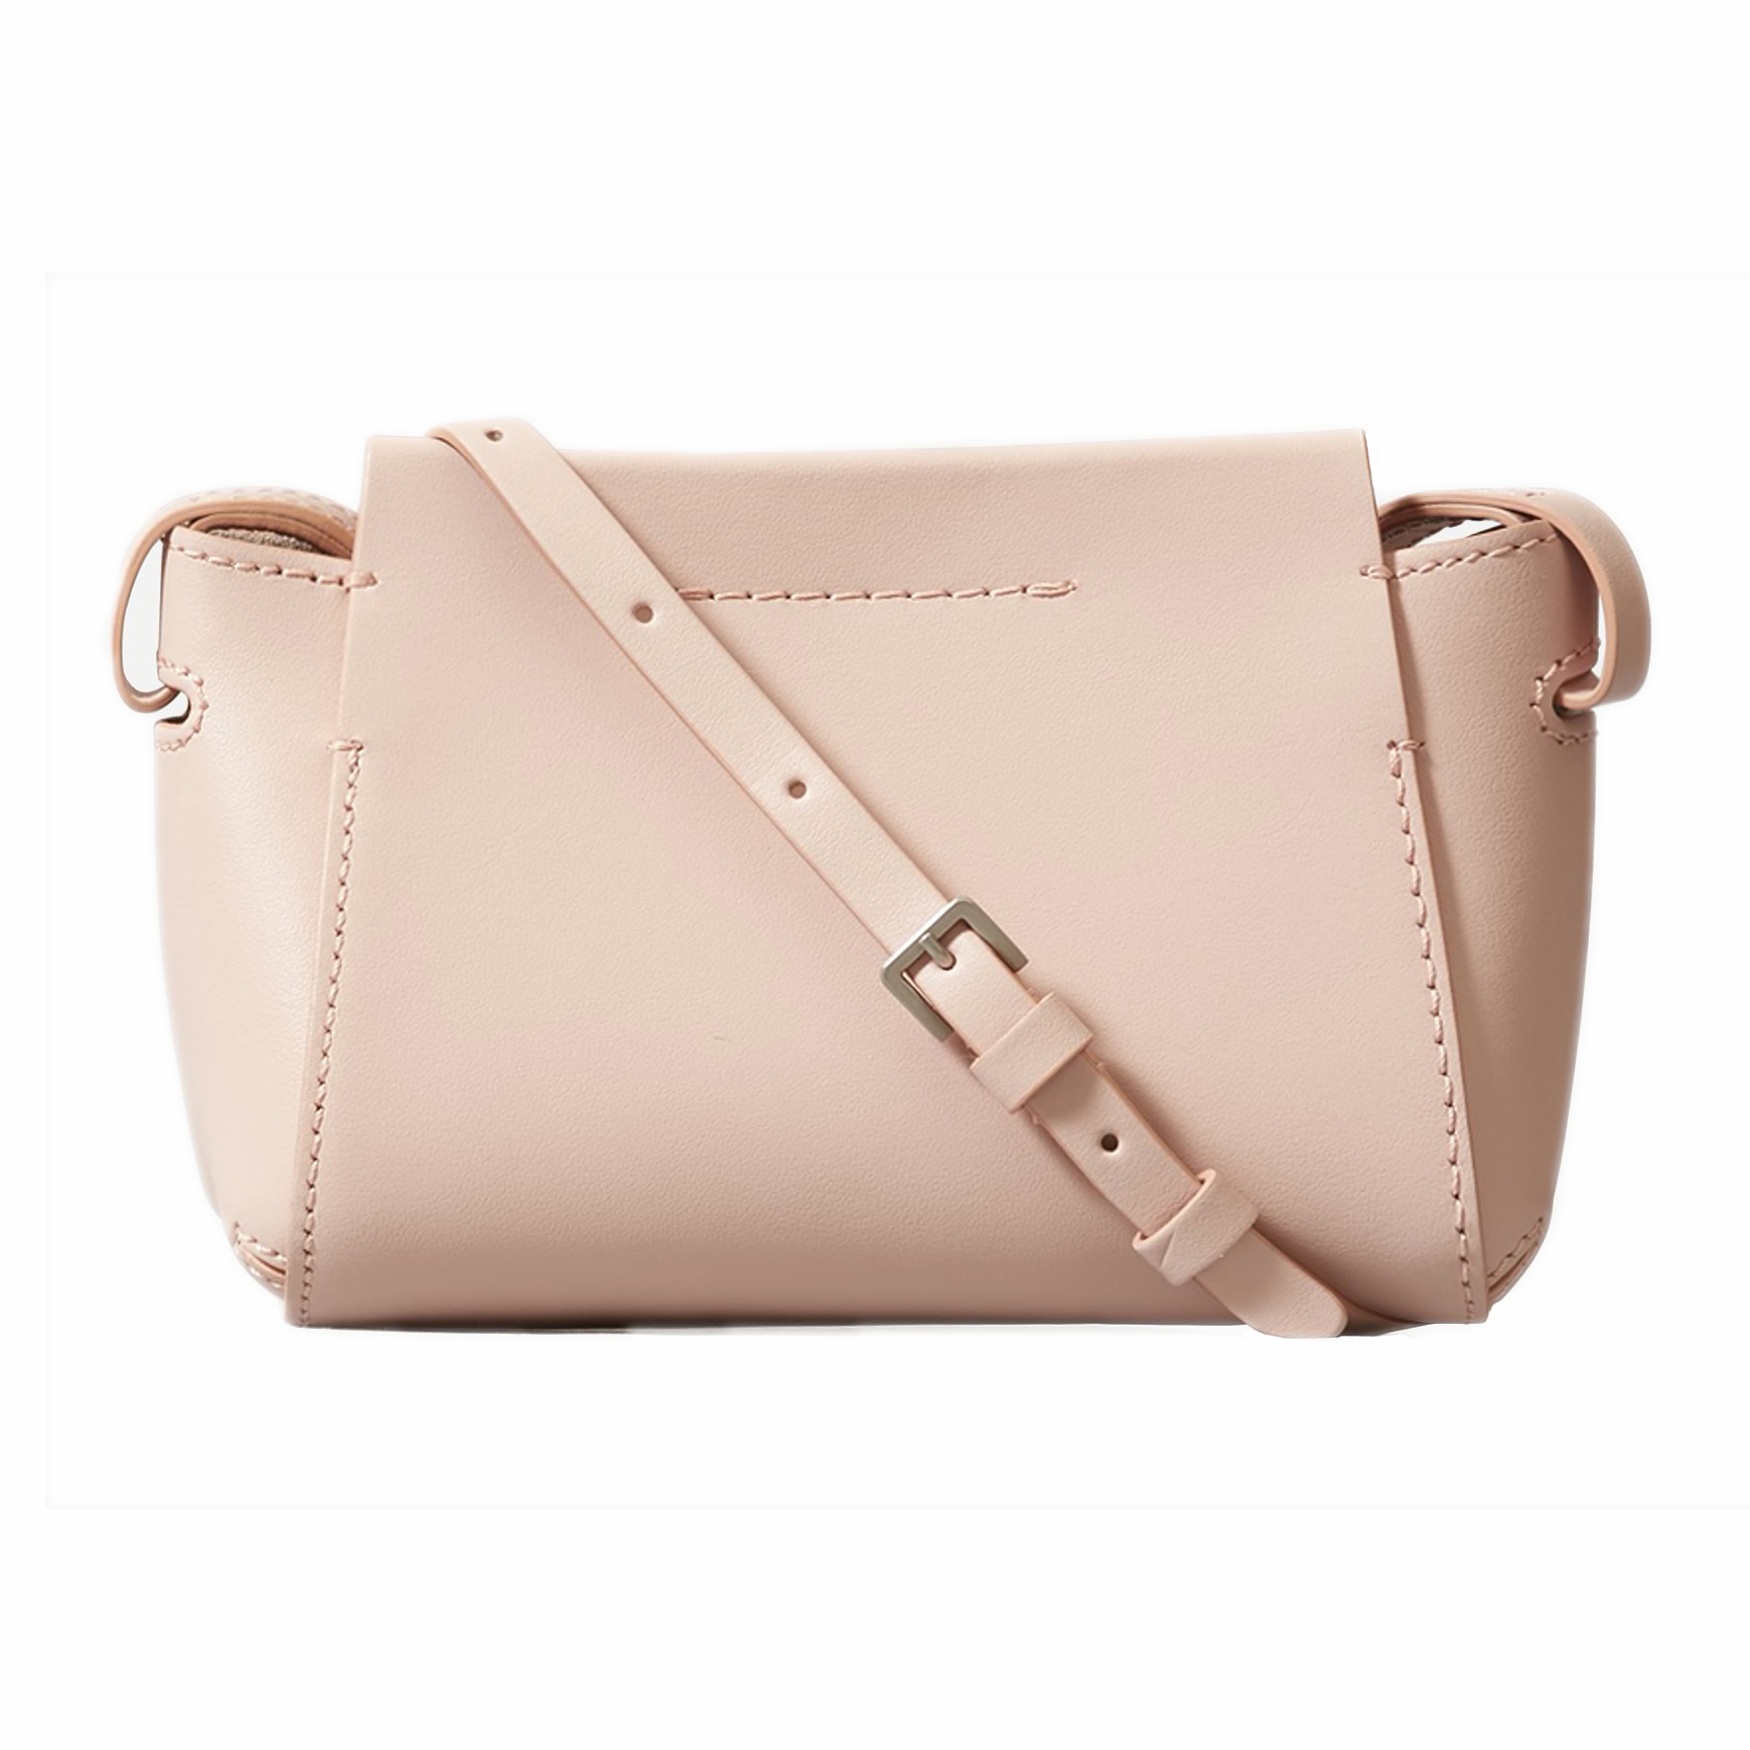 The Micro Form Bag in Peach